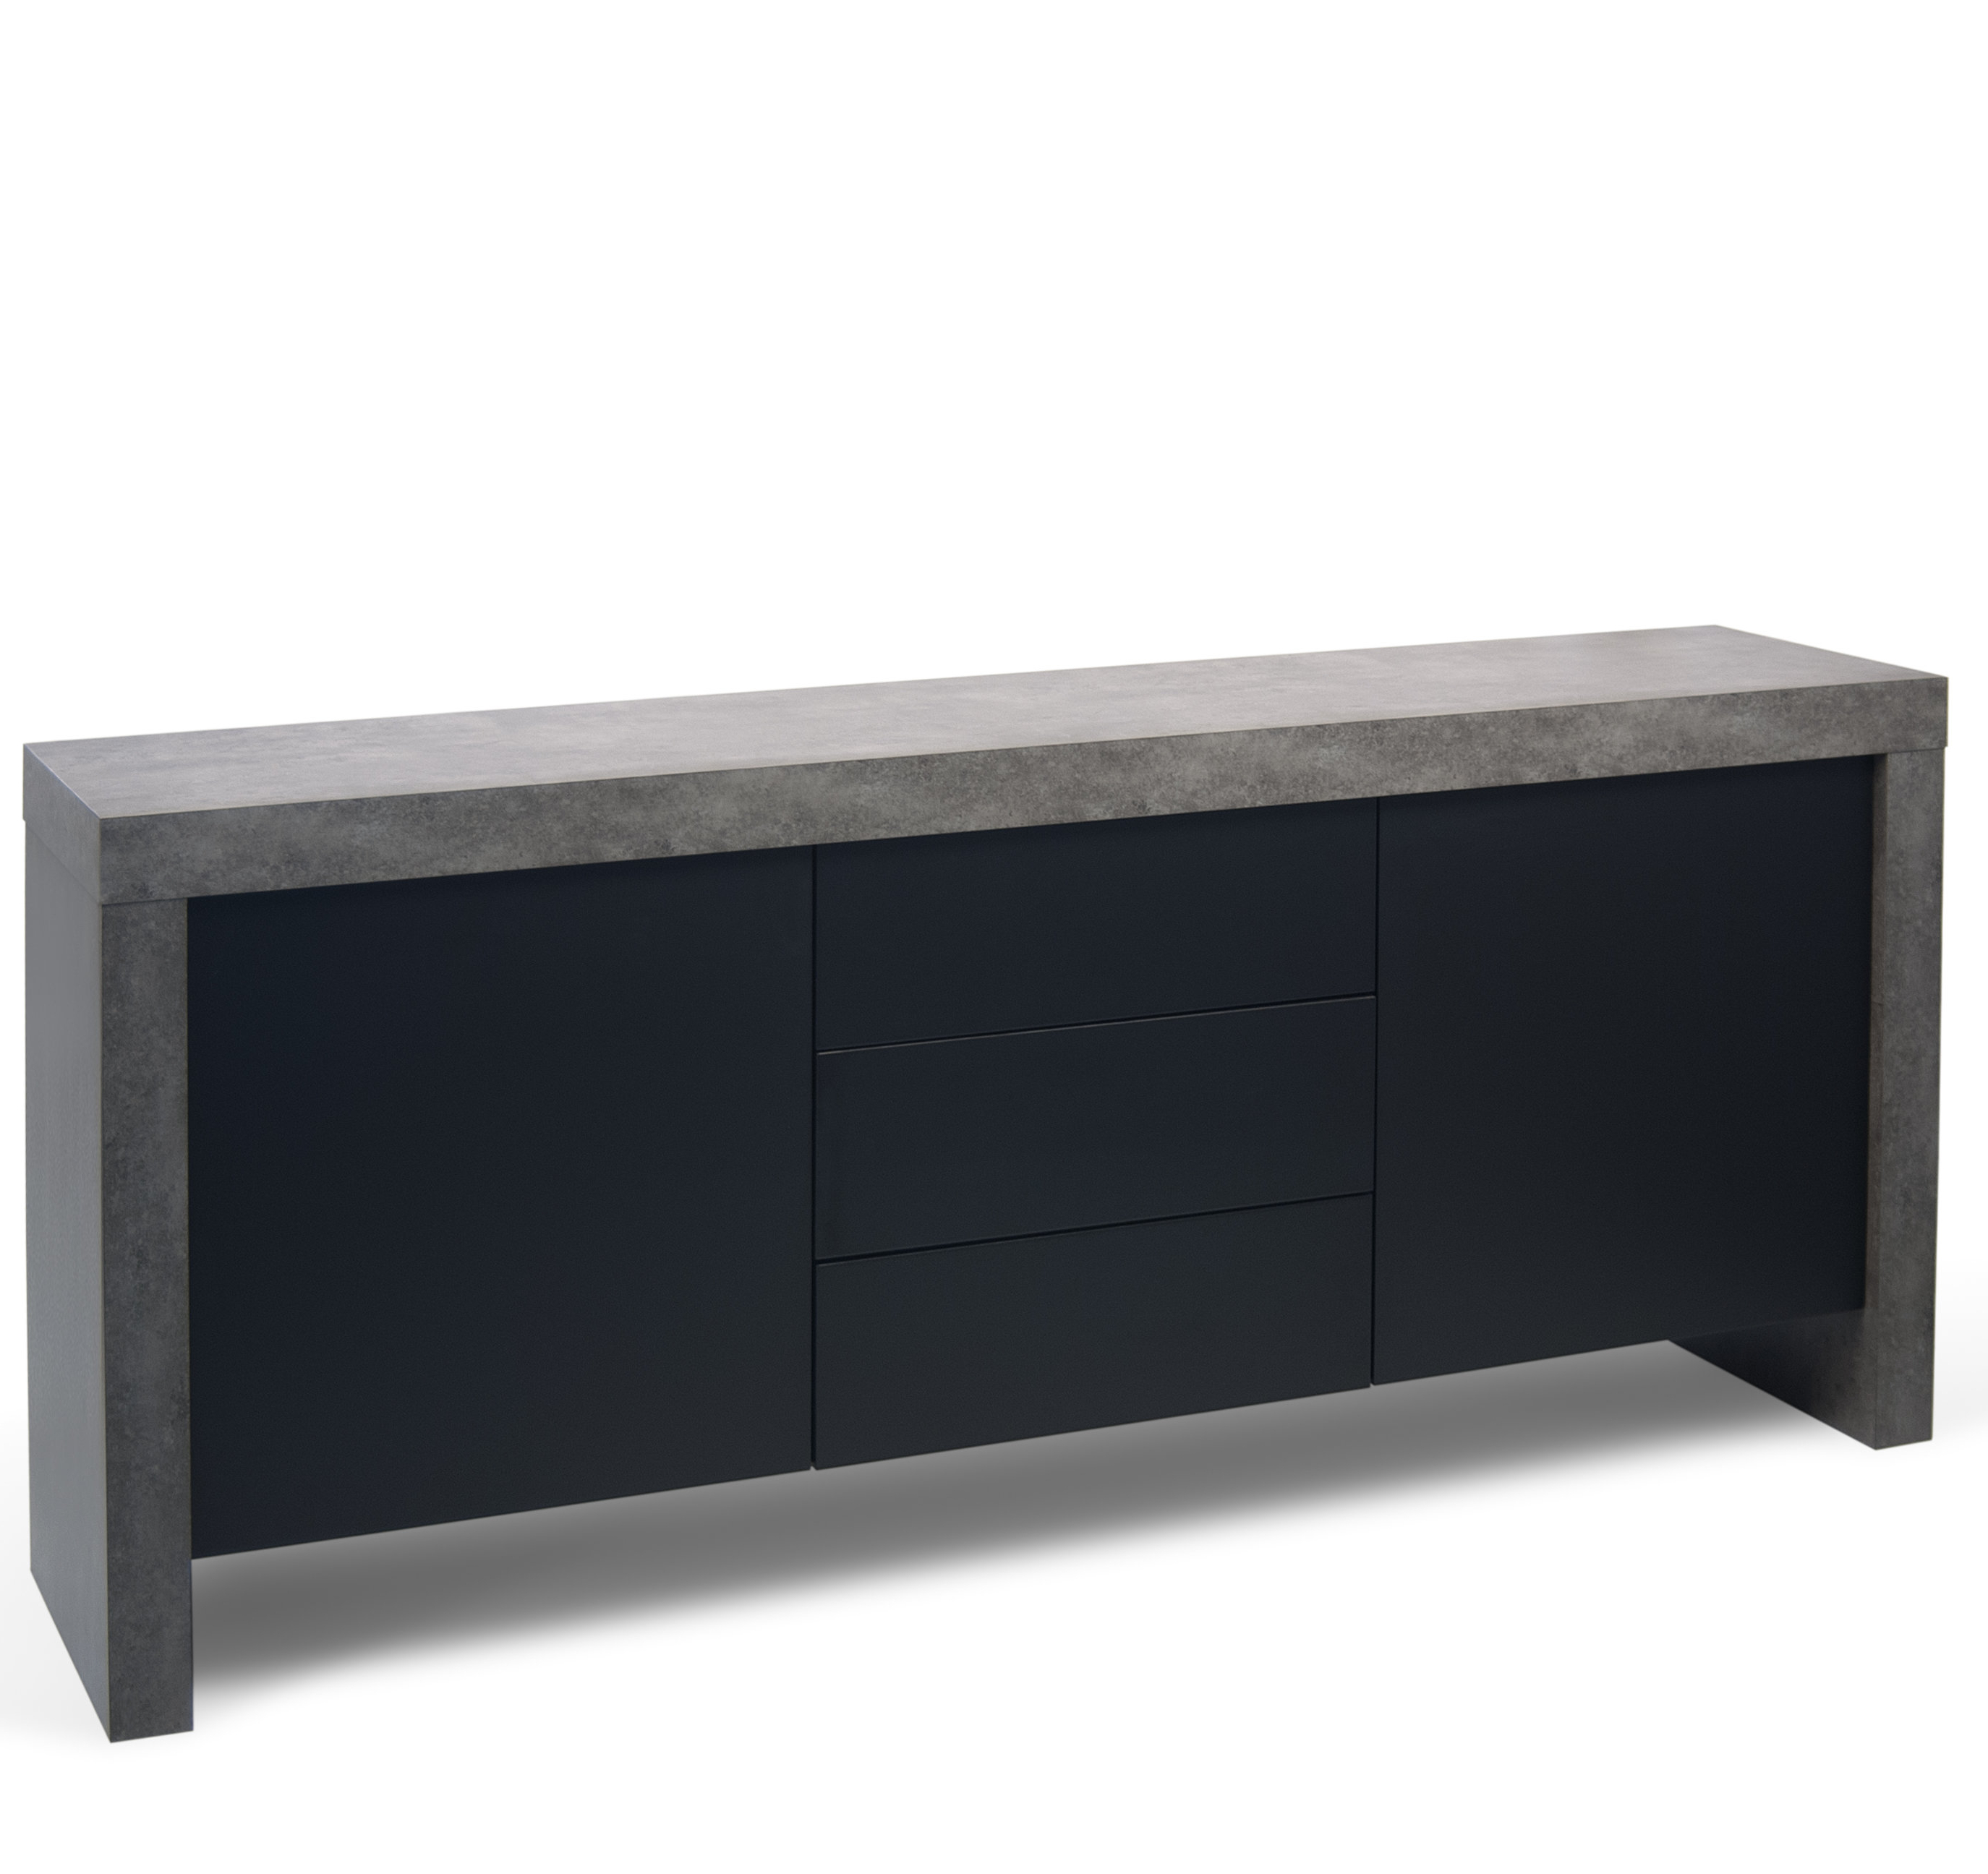 Boyce Sideboards Intended For Fashionable Cosette 2 Door Sideboard & Reviews (Gallery 13 of 20)